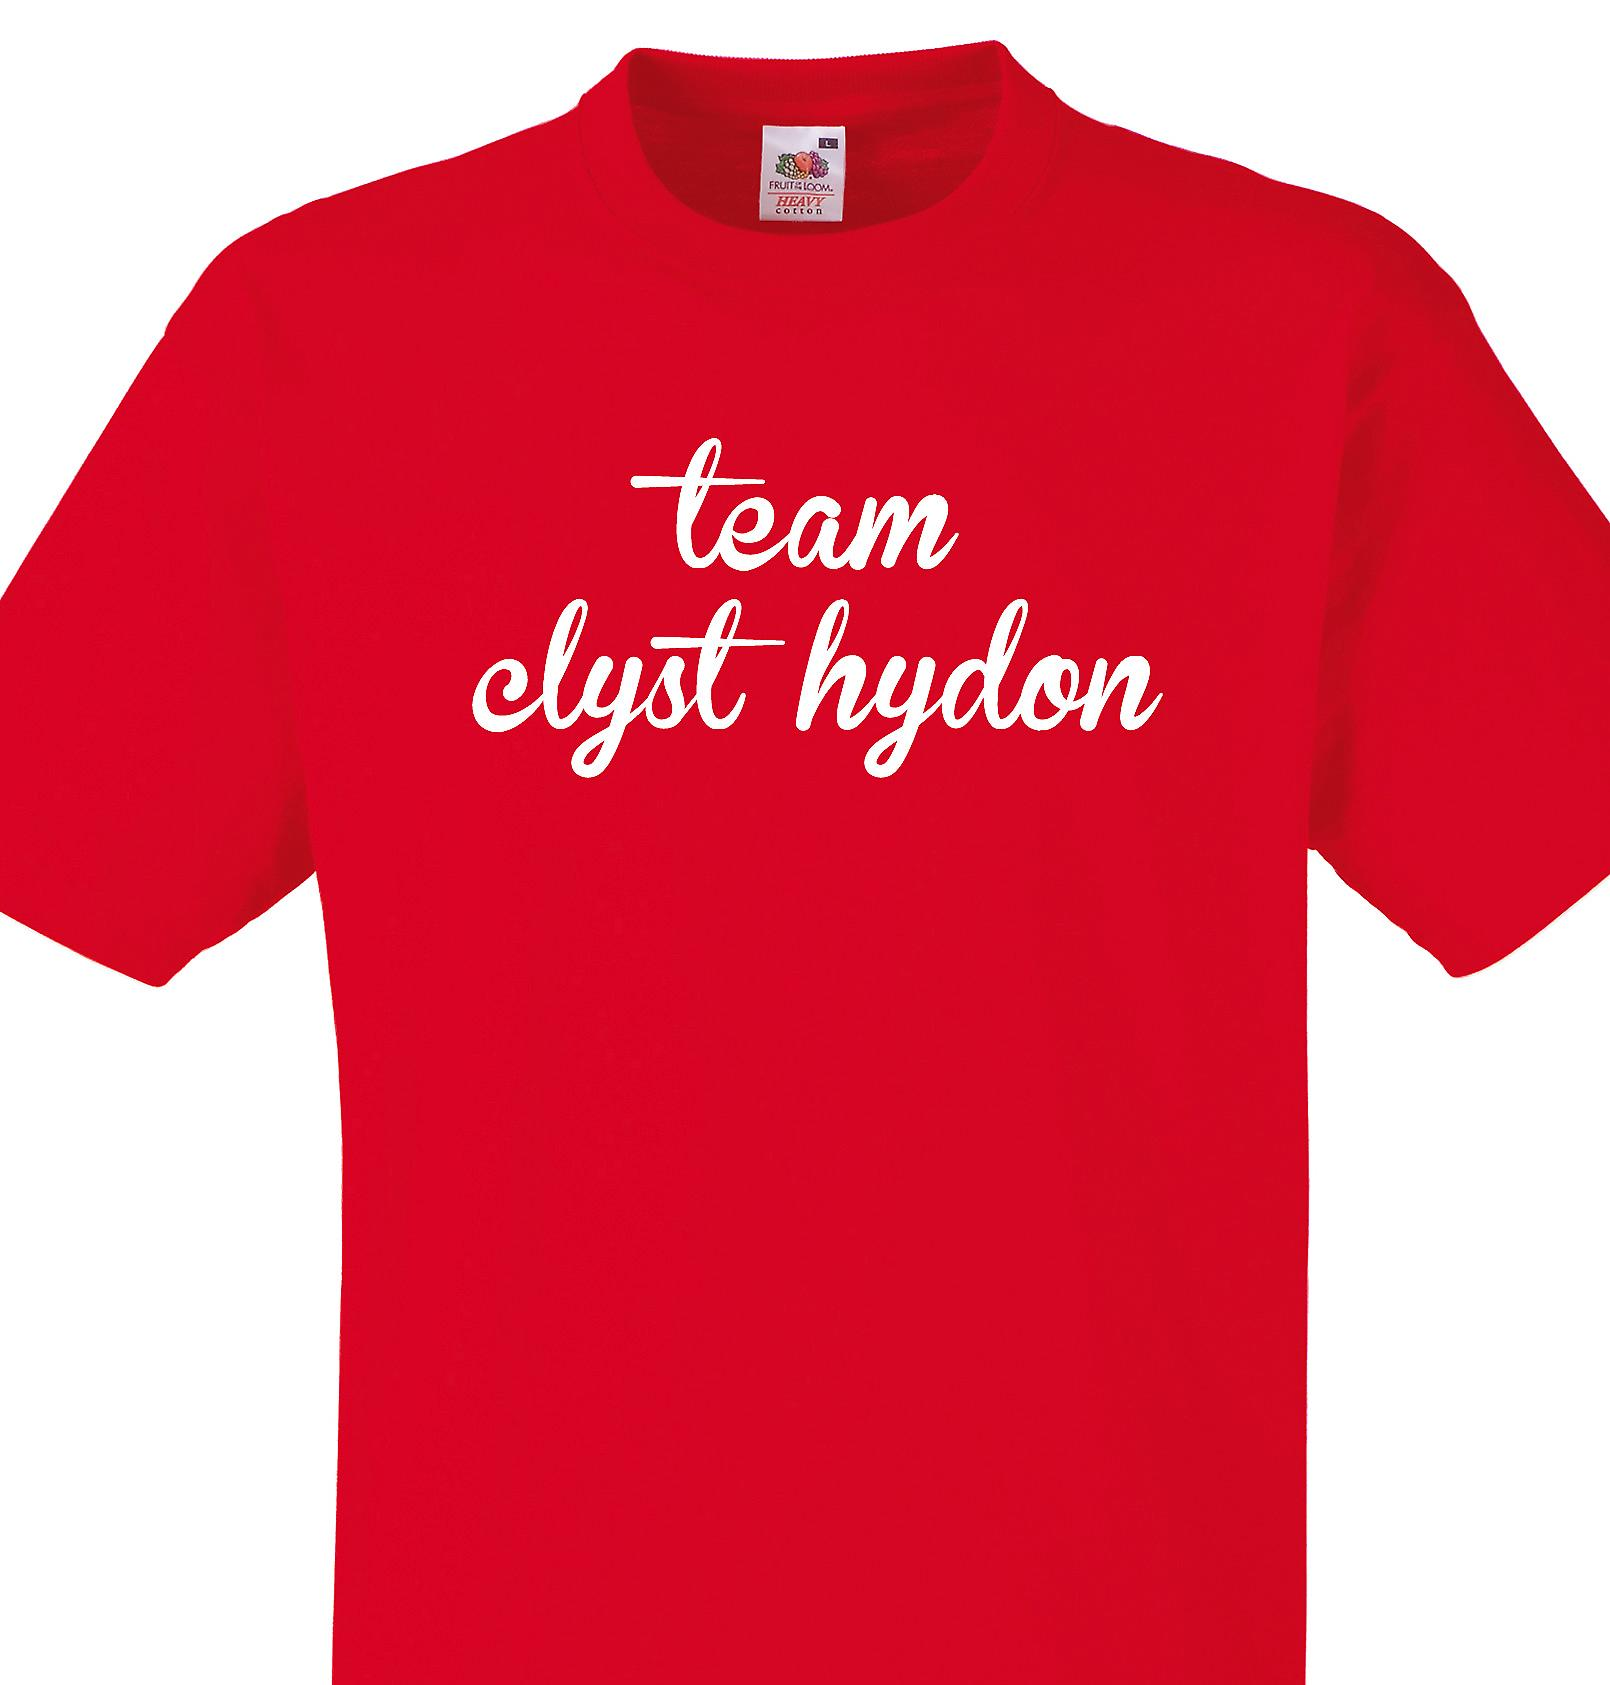 Team Clyst hydon Red T shirt